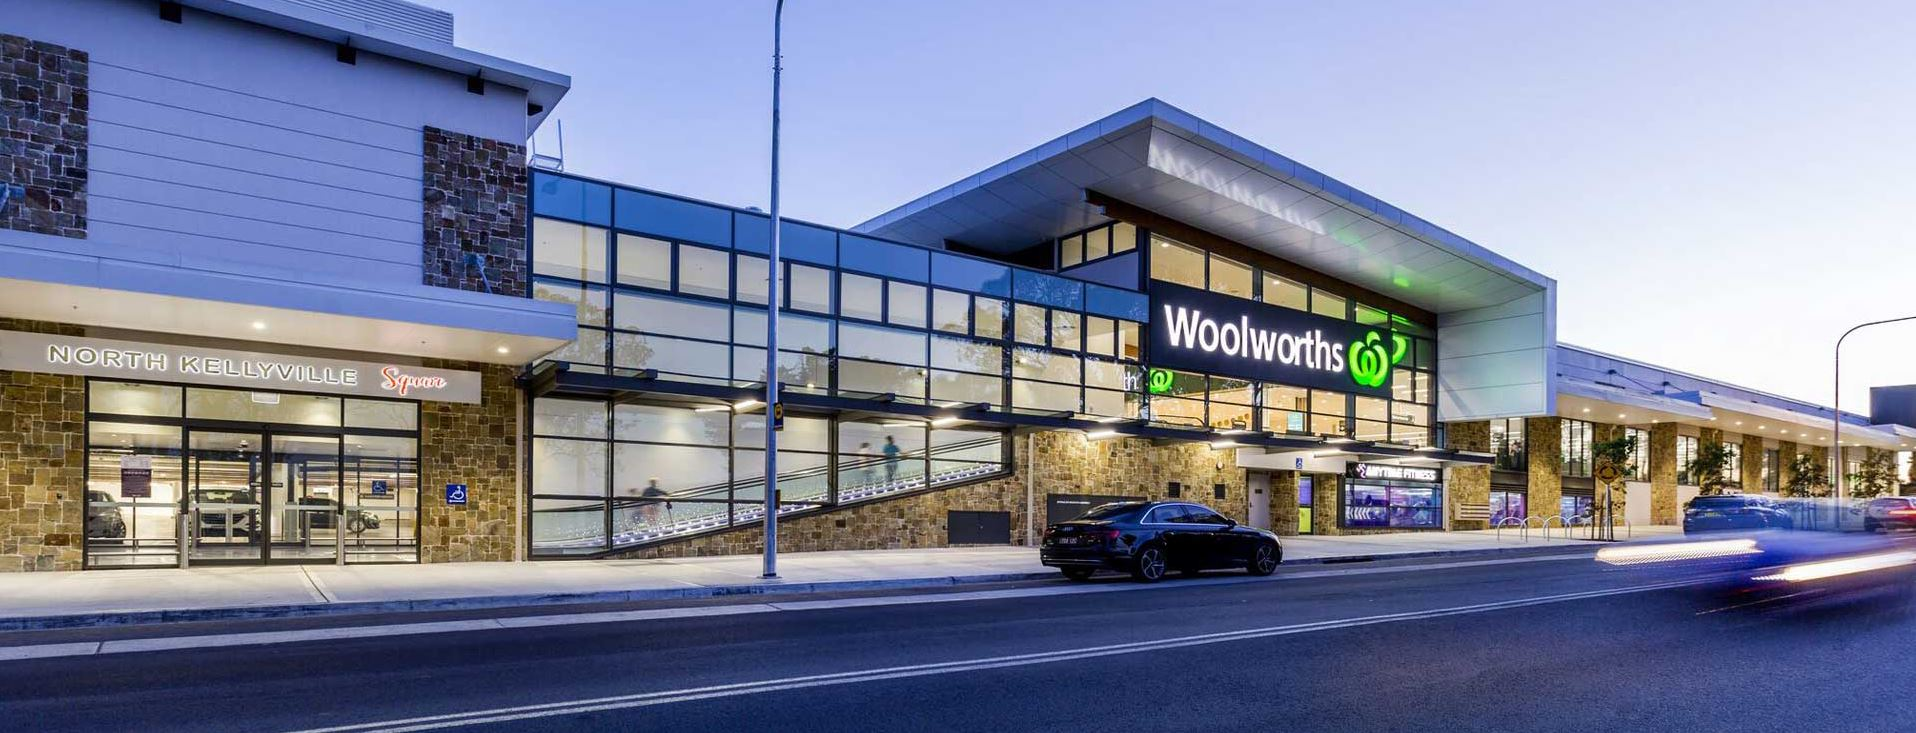 Woolworths North Kellyville Square